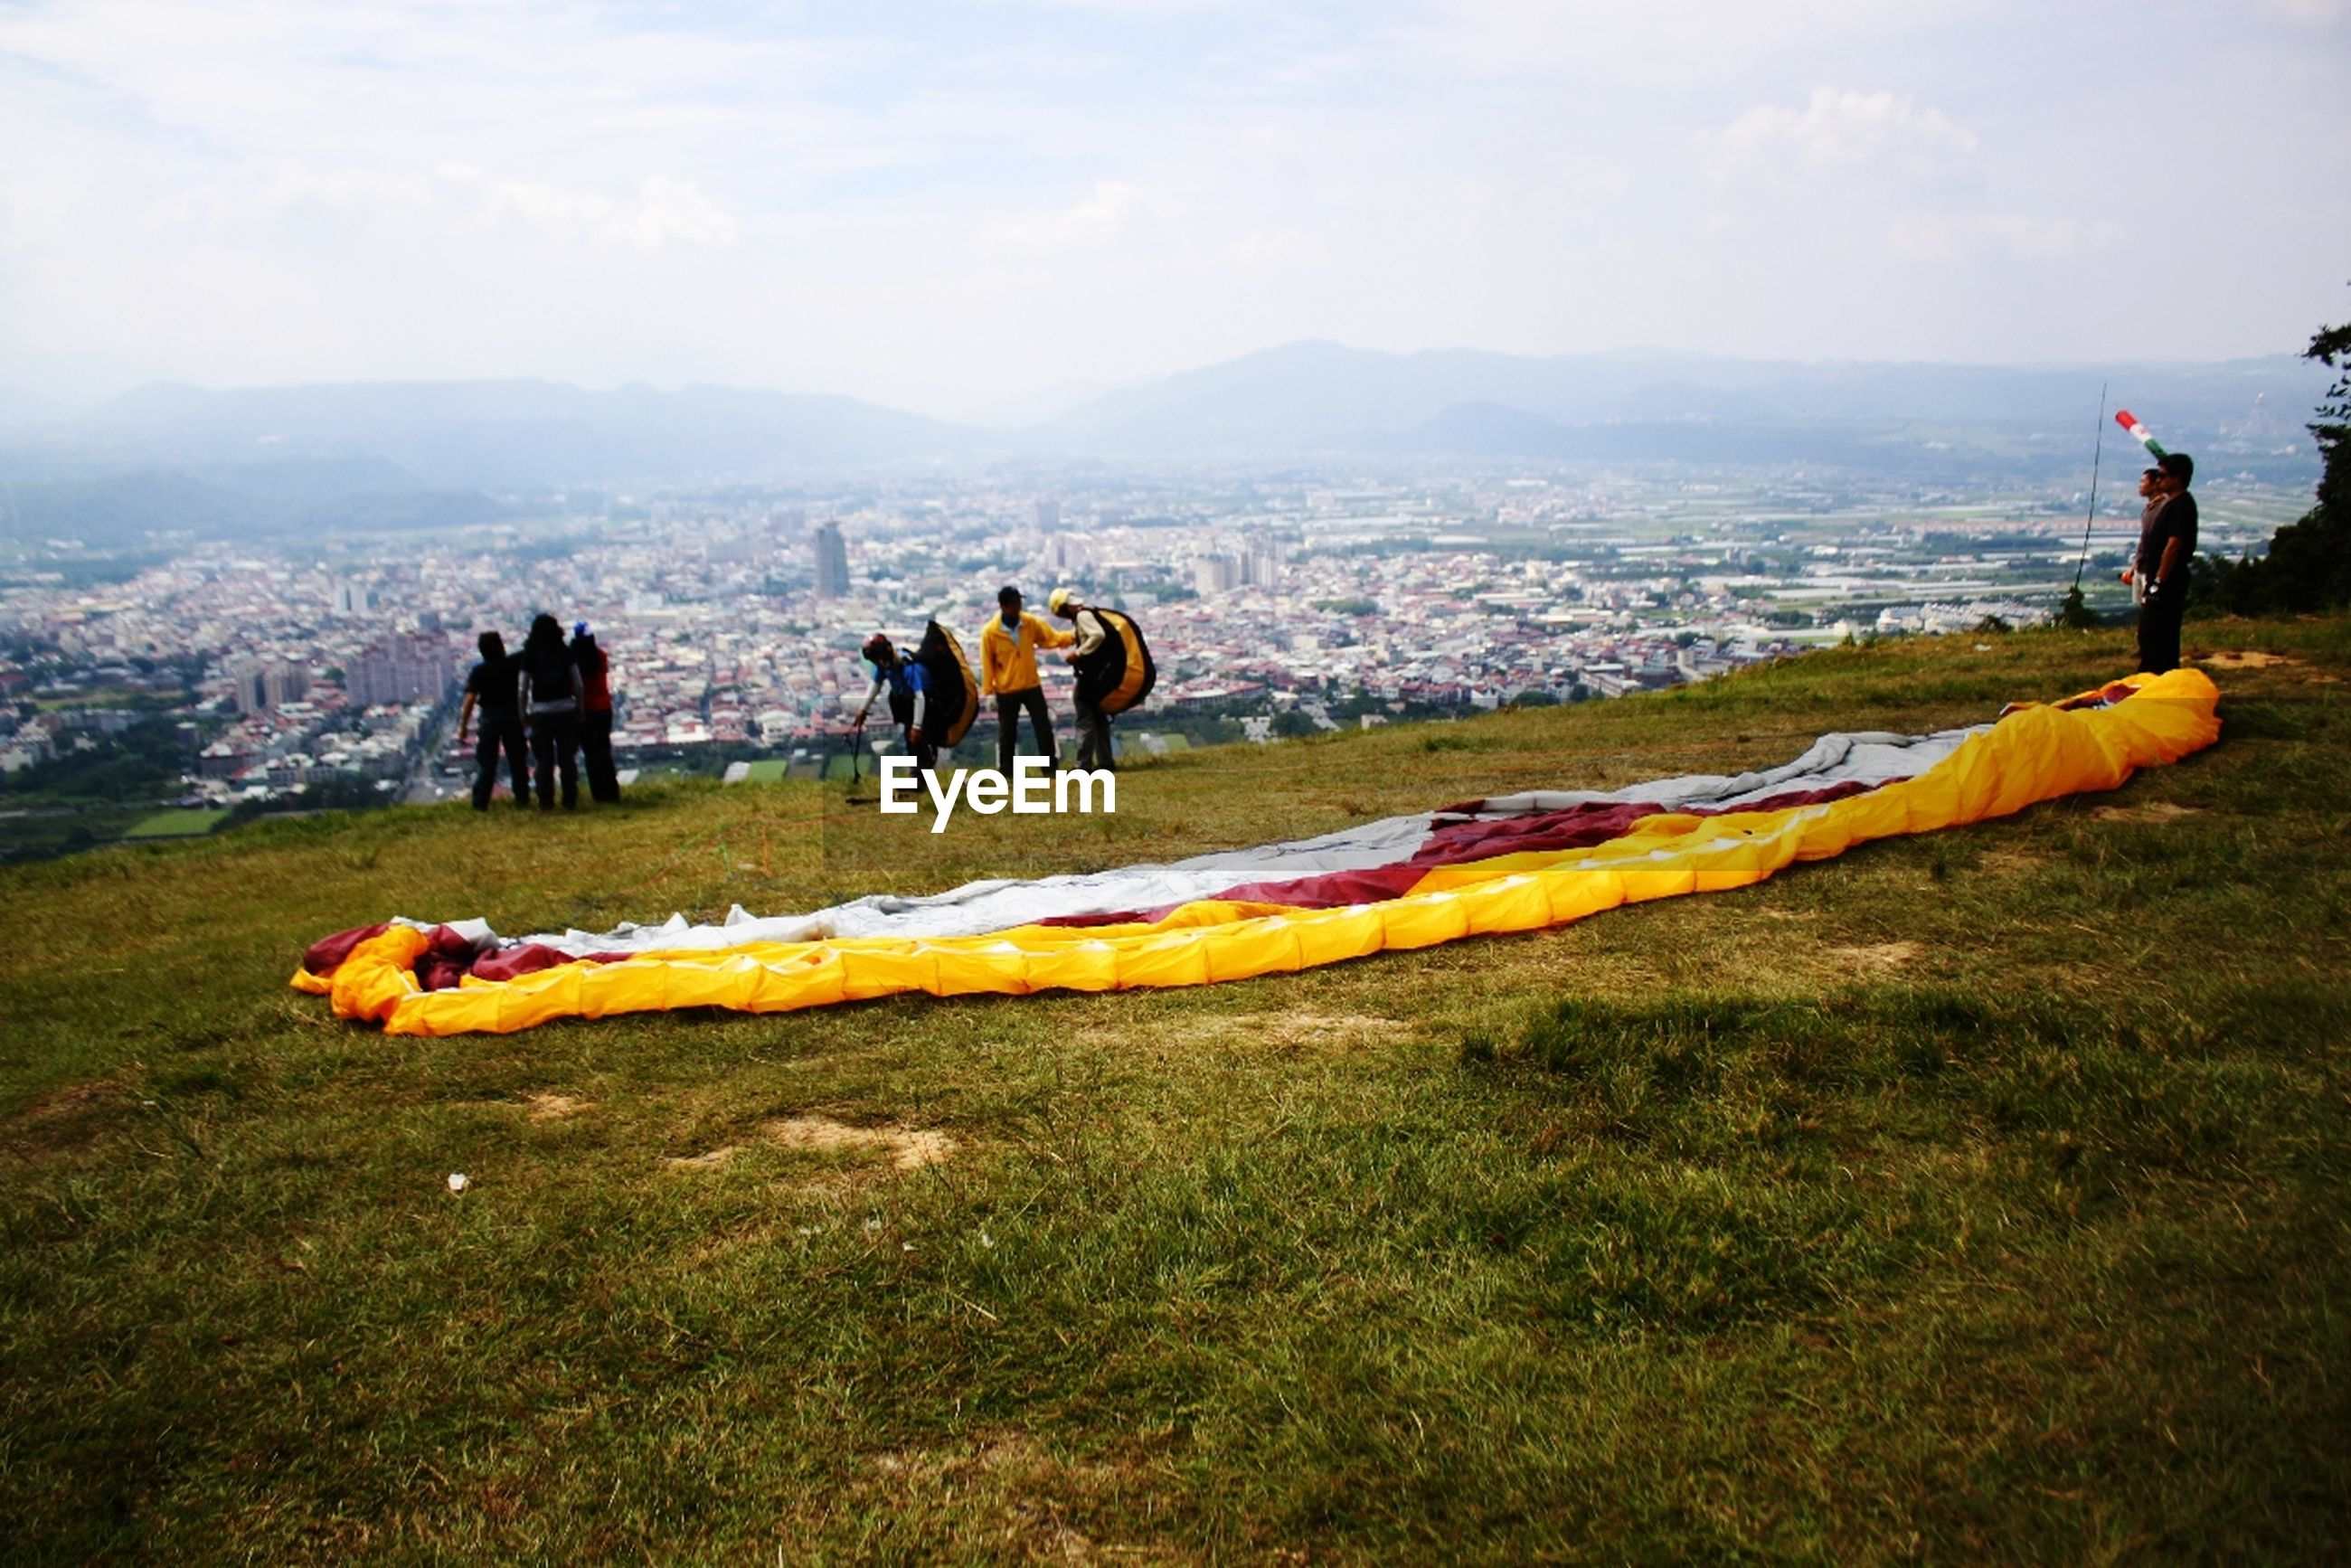 People with parachutes on grassland against cityscape